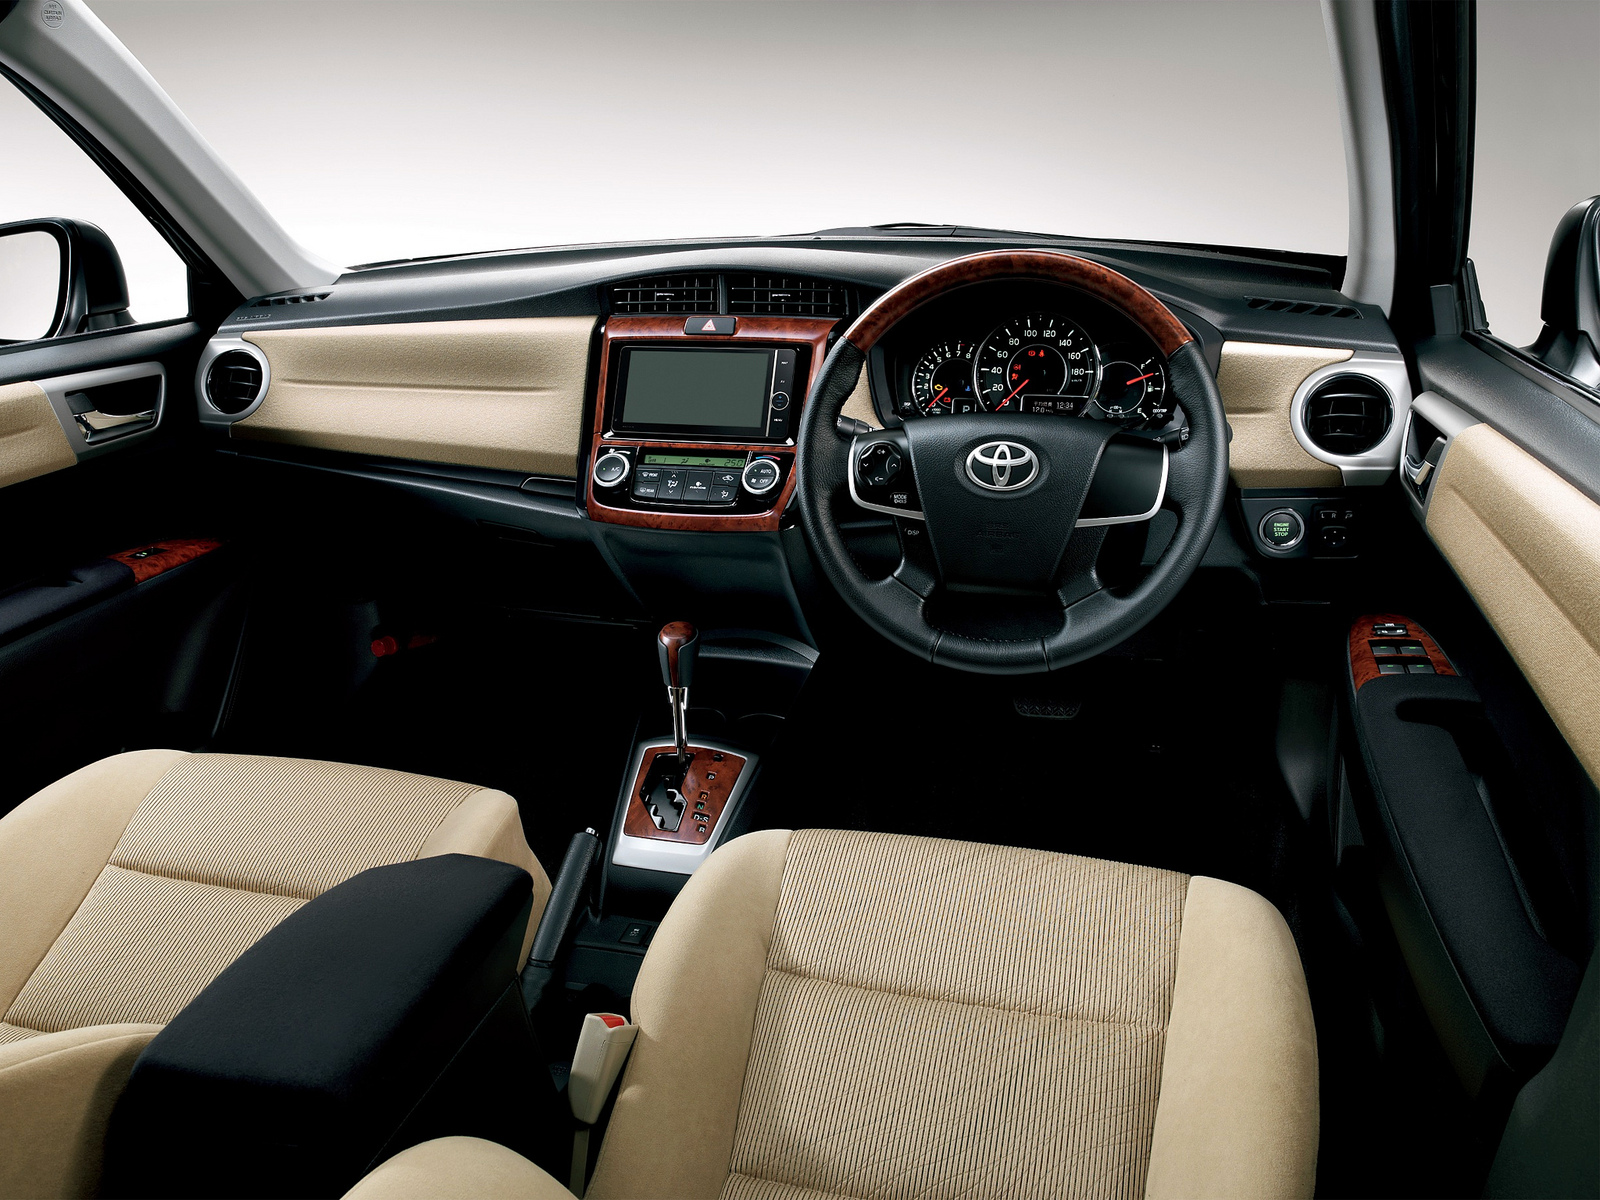 2012 Toyota Corolla Axio 1.5 luxel interior dashboard | Flickr ...